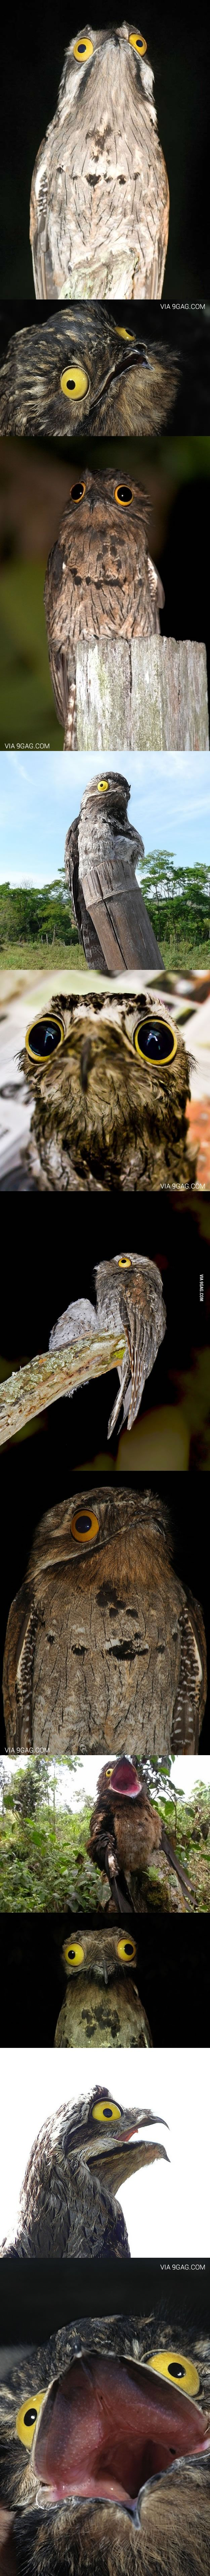 The Potoo Bird Always Looks Like It Saw Something Horrifying  Do you have any of these?!?! @Mada